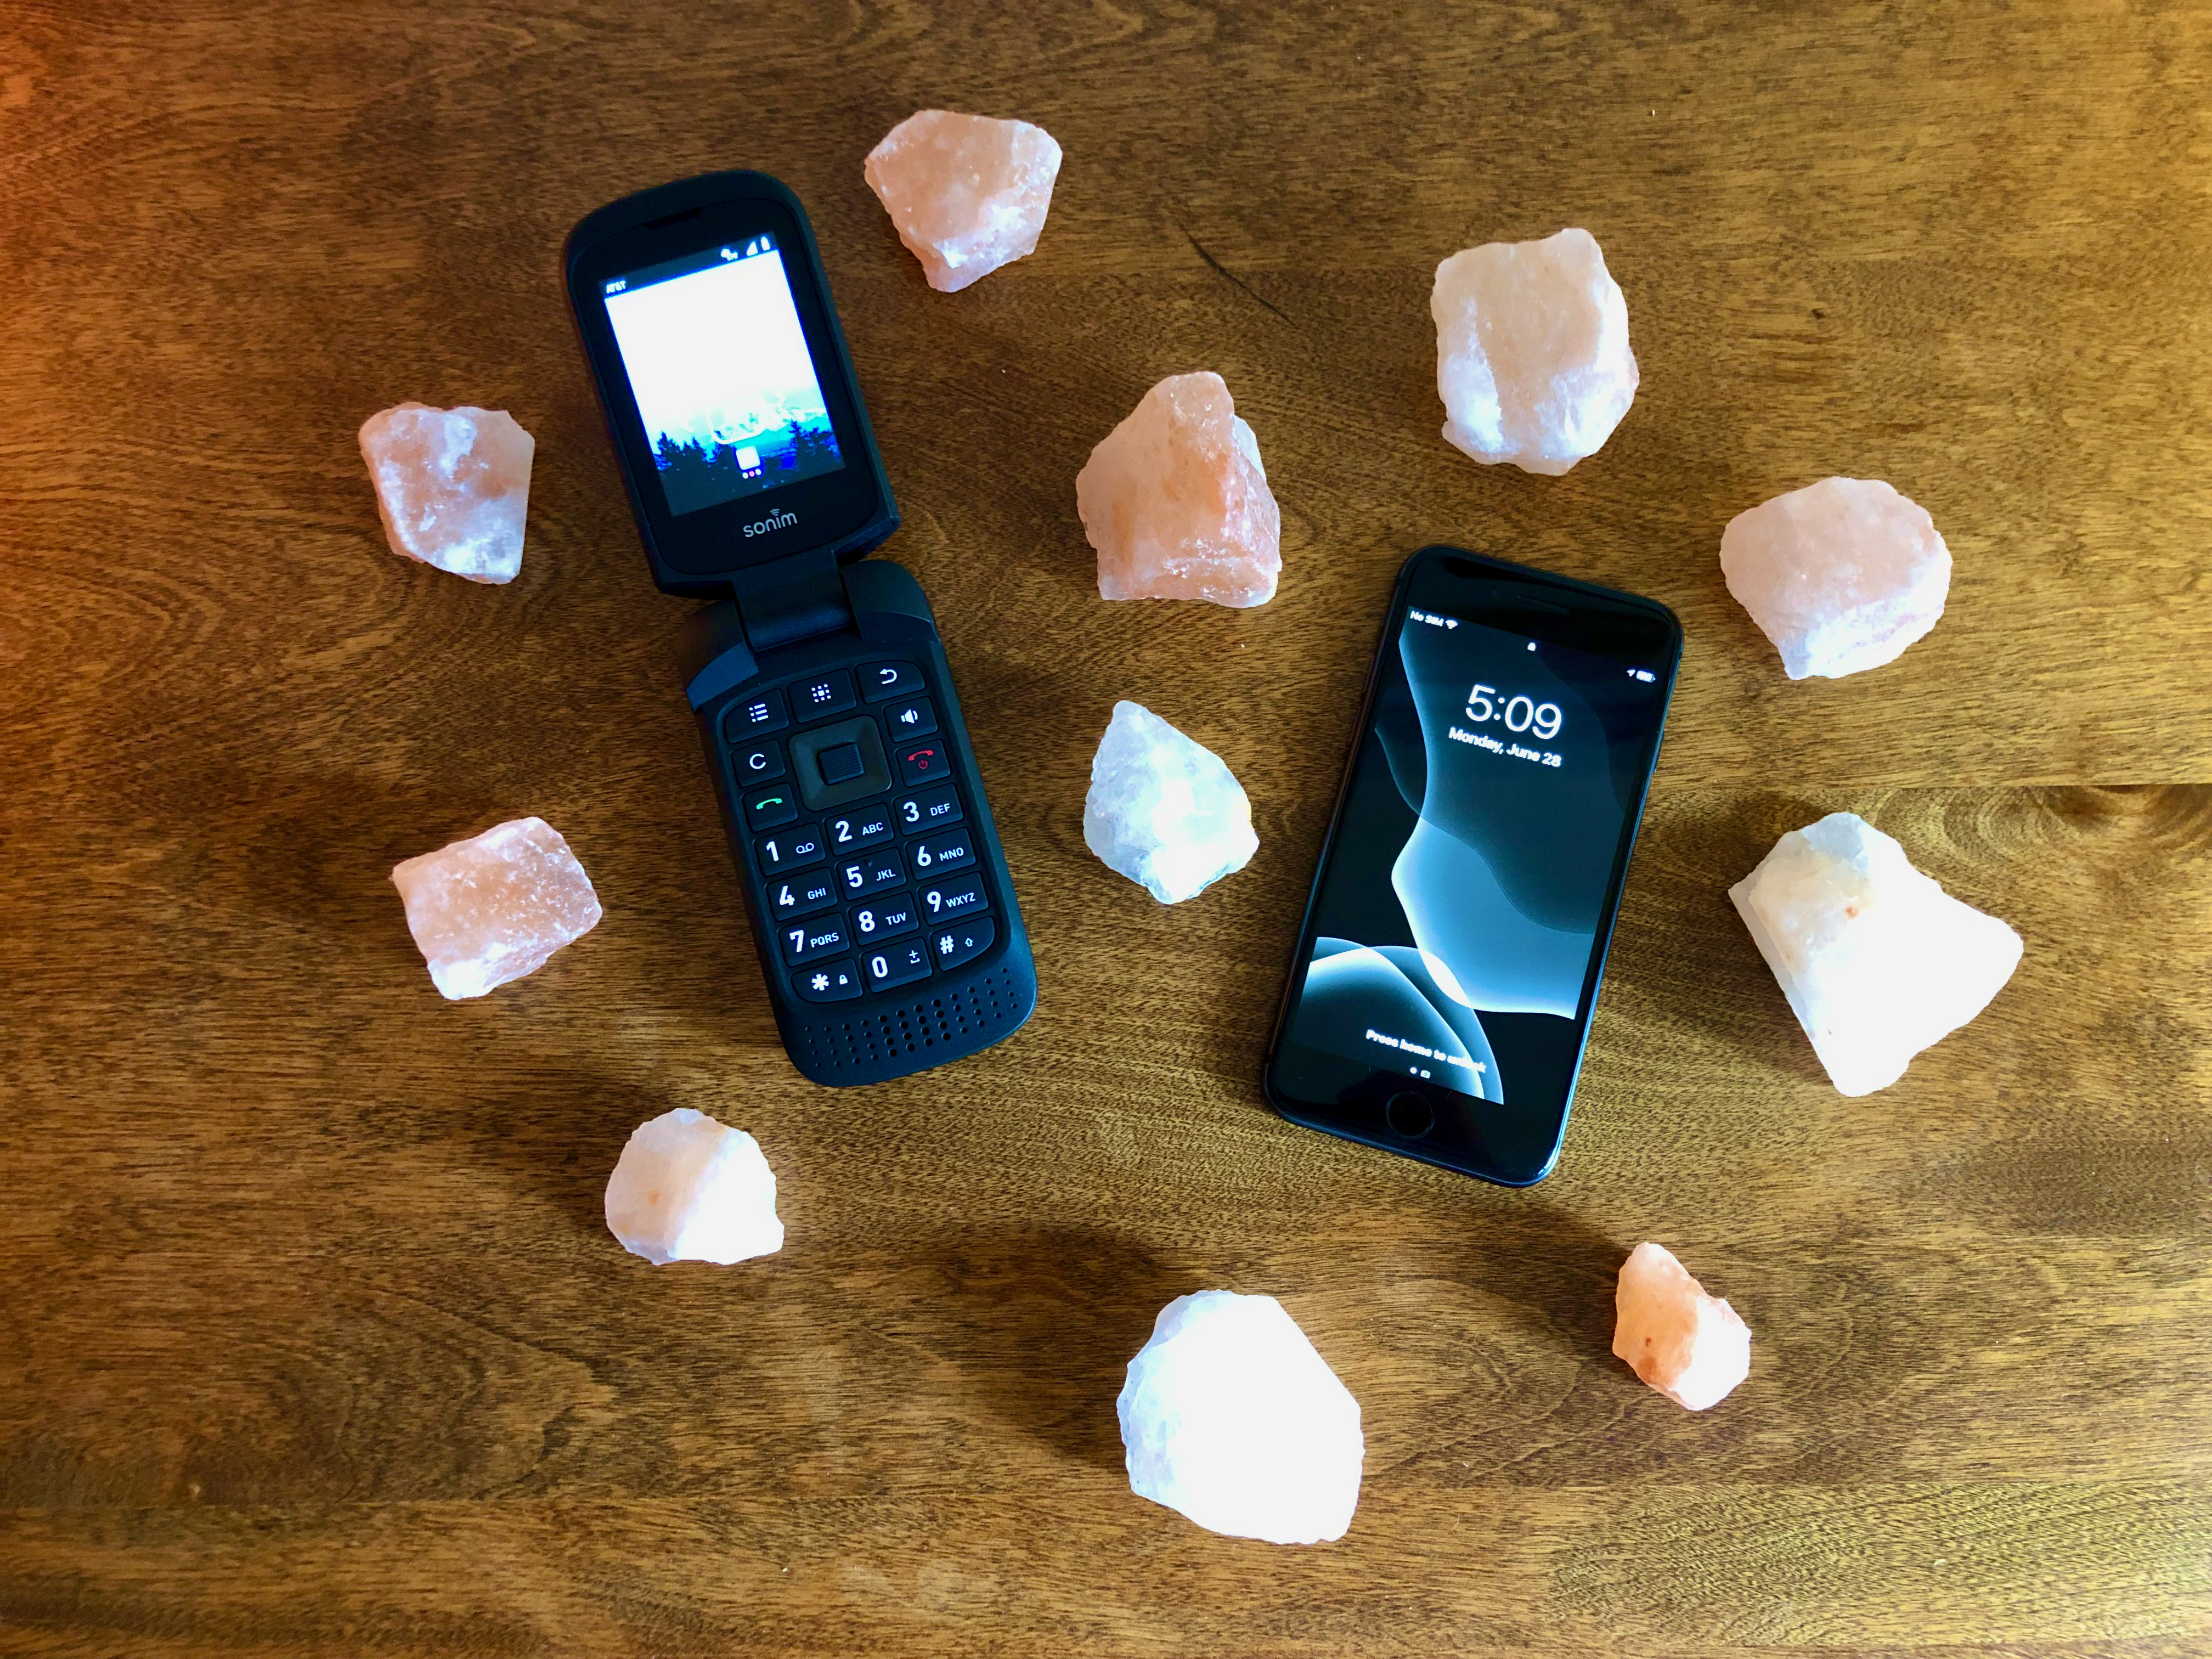 Image of a flip phone next to an iPhone, surrounded by small salt rocks.